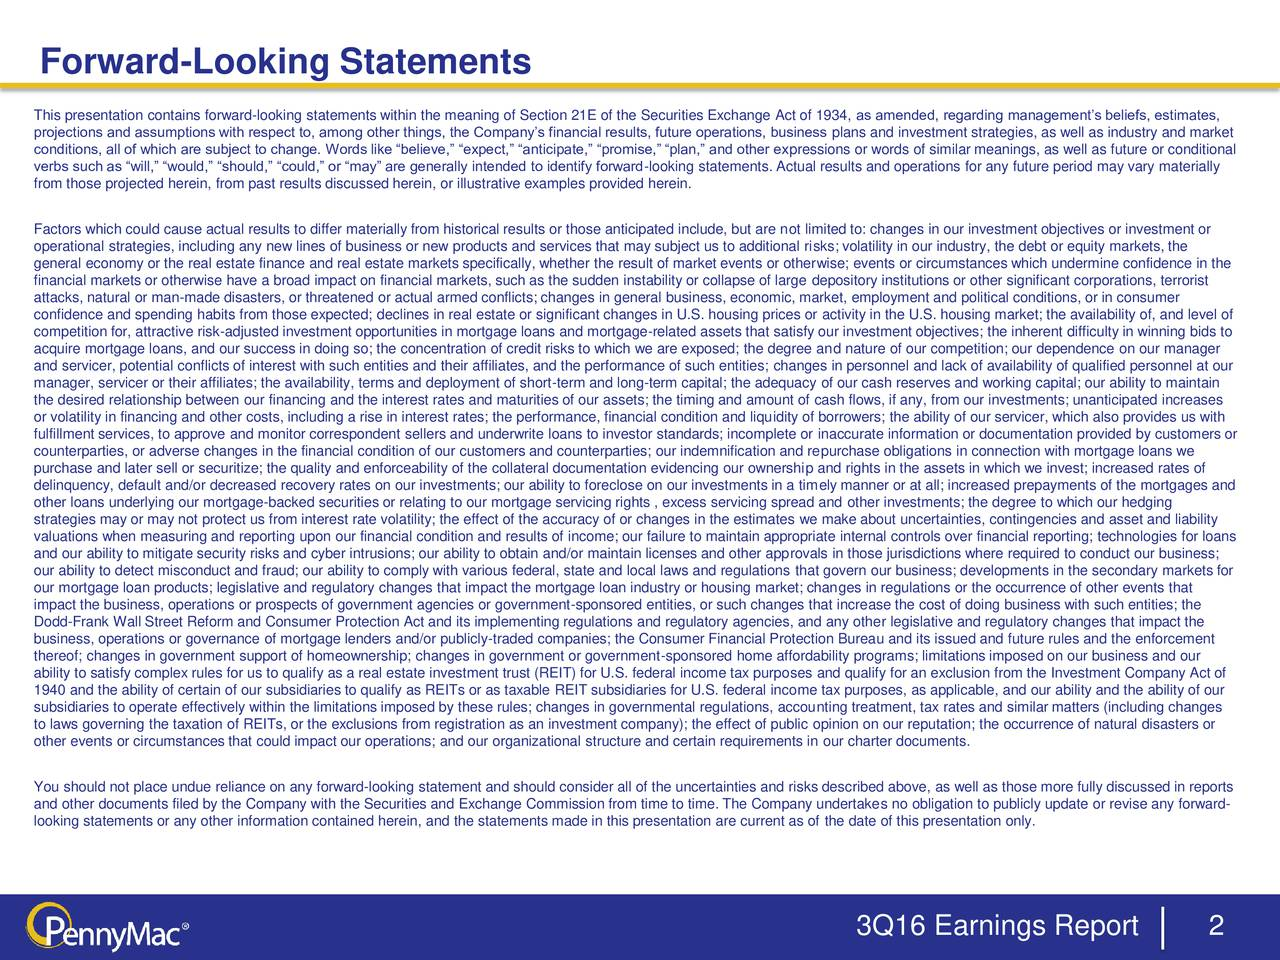 This presentation contains forward-looking statements within the meaning of Section 21E of the Securities Exchange Act of 1934, as amended, regarding managements beliefs, estimates, projections and assumptions with respect to, among other things, the Companys financial results, future operations, business plans and investment strategies, as well as industry and market conditions, all of which are subject to change. Words like believe, expect, anticipate, promise, plan, and other expressions or words of similar meanings, as well as future or conditional verbs such as will, would, should, could, or may are generally intended to identify forward-looking statements. Actual results and operations for any future period may vary materially from those projected herein, from past results discussed herein, or illustrative examples provided herein. Factors which could cause actual results to differ materially from historical results or those anticipated include, but are not limited to: changes in our investment objectives or investment or operational strategies, including any new lines of business or new products and services that may subject us to additional risks; volatility in our industry, the debt or equity markets, the general economy or the real estate finance and real estate markets specifically, whether the result of market events or otherwise; events or circumstances which undermine confidence in the financial markets or otherwise have a broad impact on financial markets, such as the sudden instability or collapse of large depository institutions or other significant corporations, terrorist attacks, natural or man-made disasters, or threatened or actual armed conflicts; changes in general business, economic, market, employment and political conditions, or in consumer confidence and spending habits from those expected; declines in real estate or significant changes in U.S. housing prices or activity in the U.S. housing market; the availability of, and level of competi